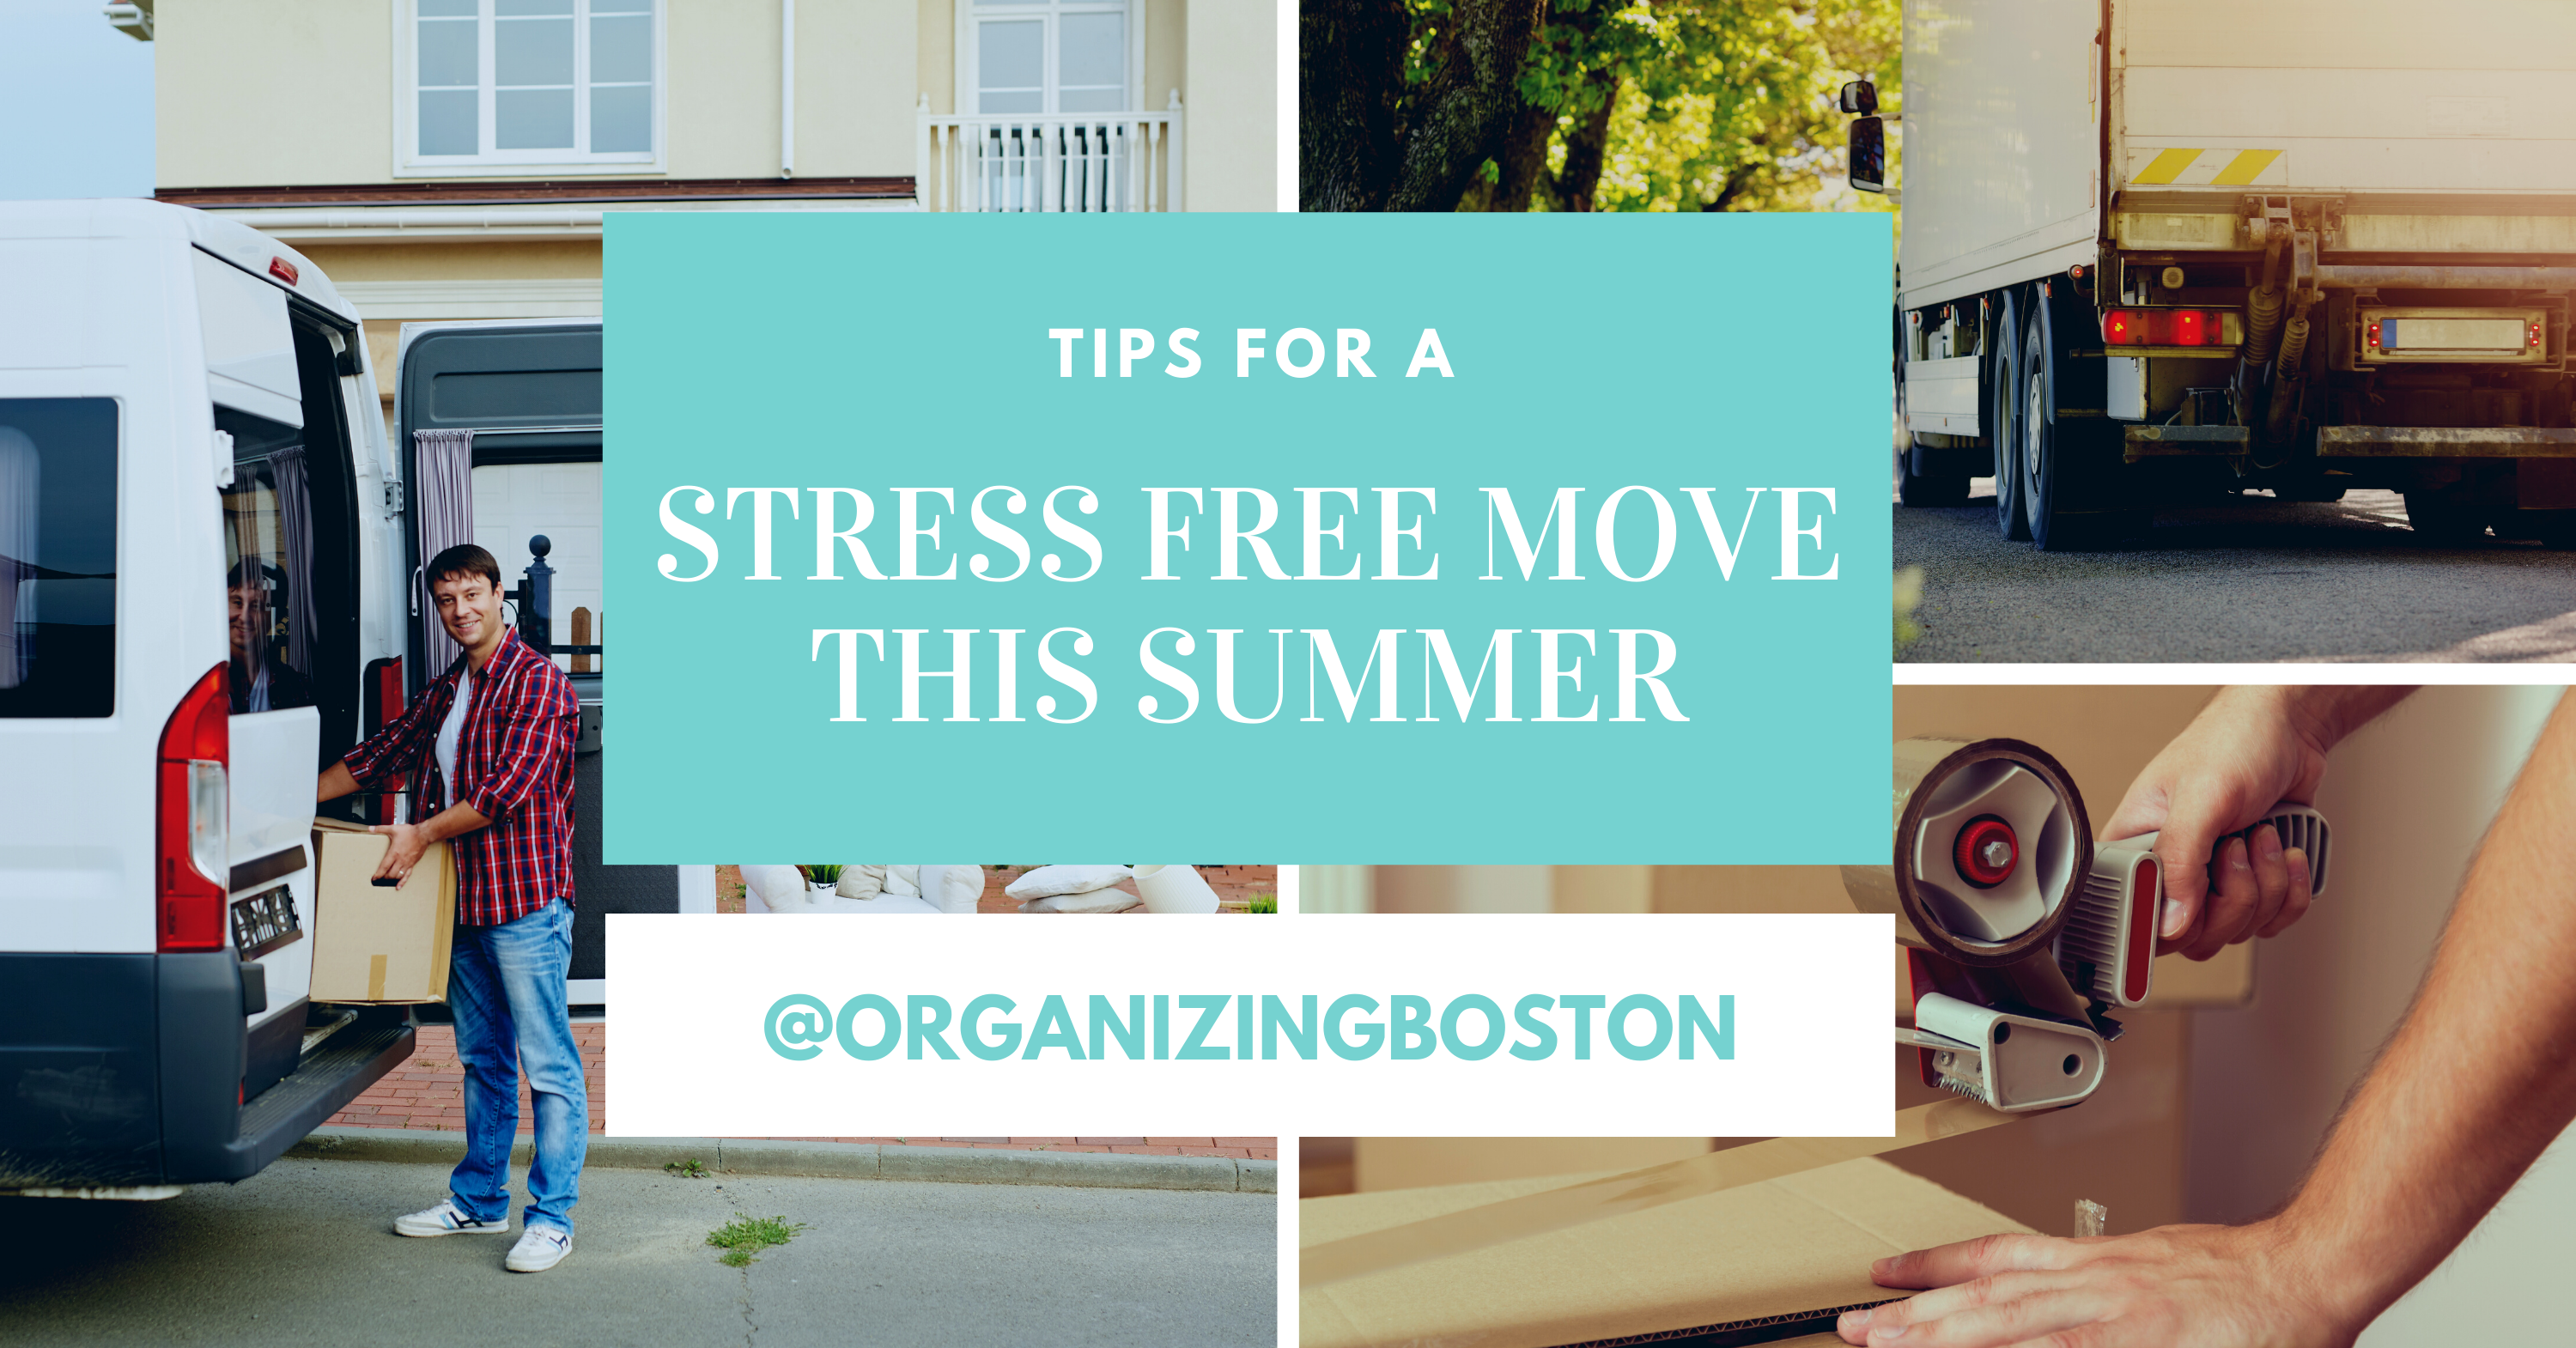 Tips for a Stress-Free Move this Summer!